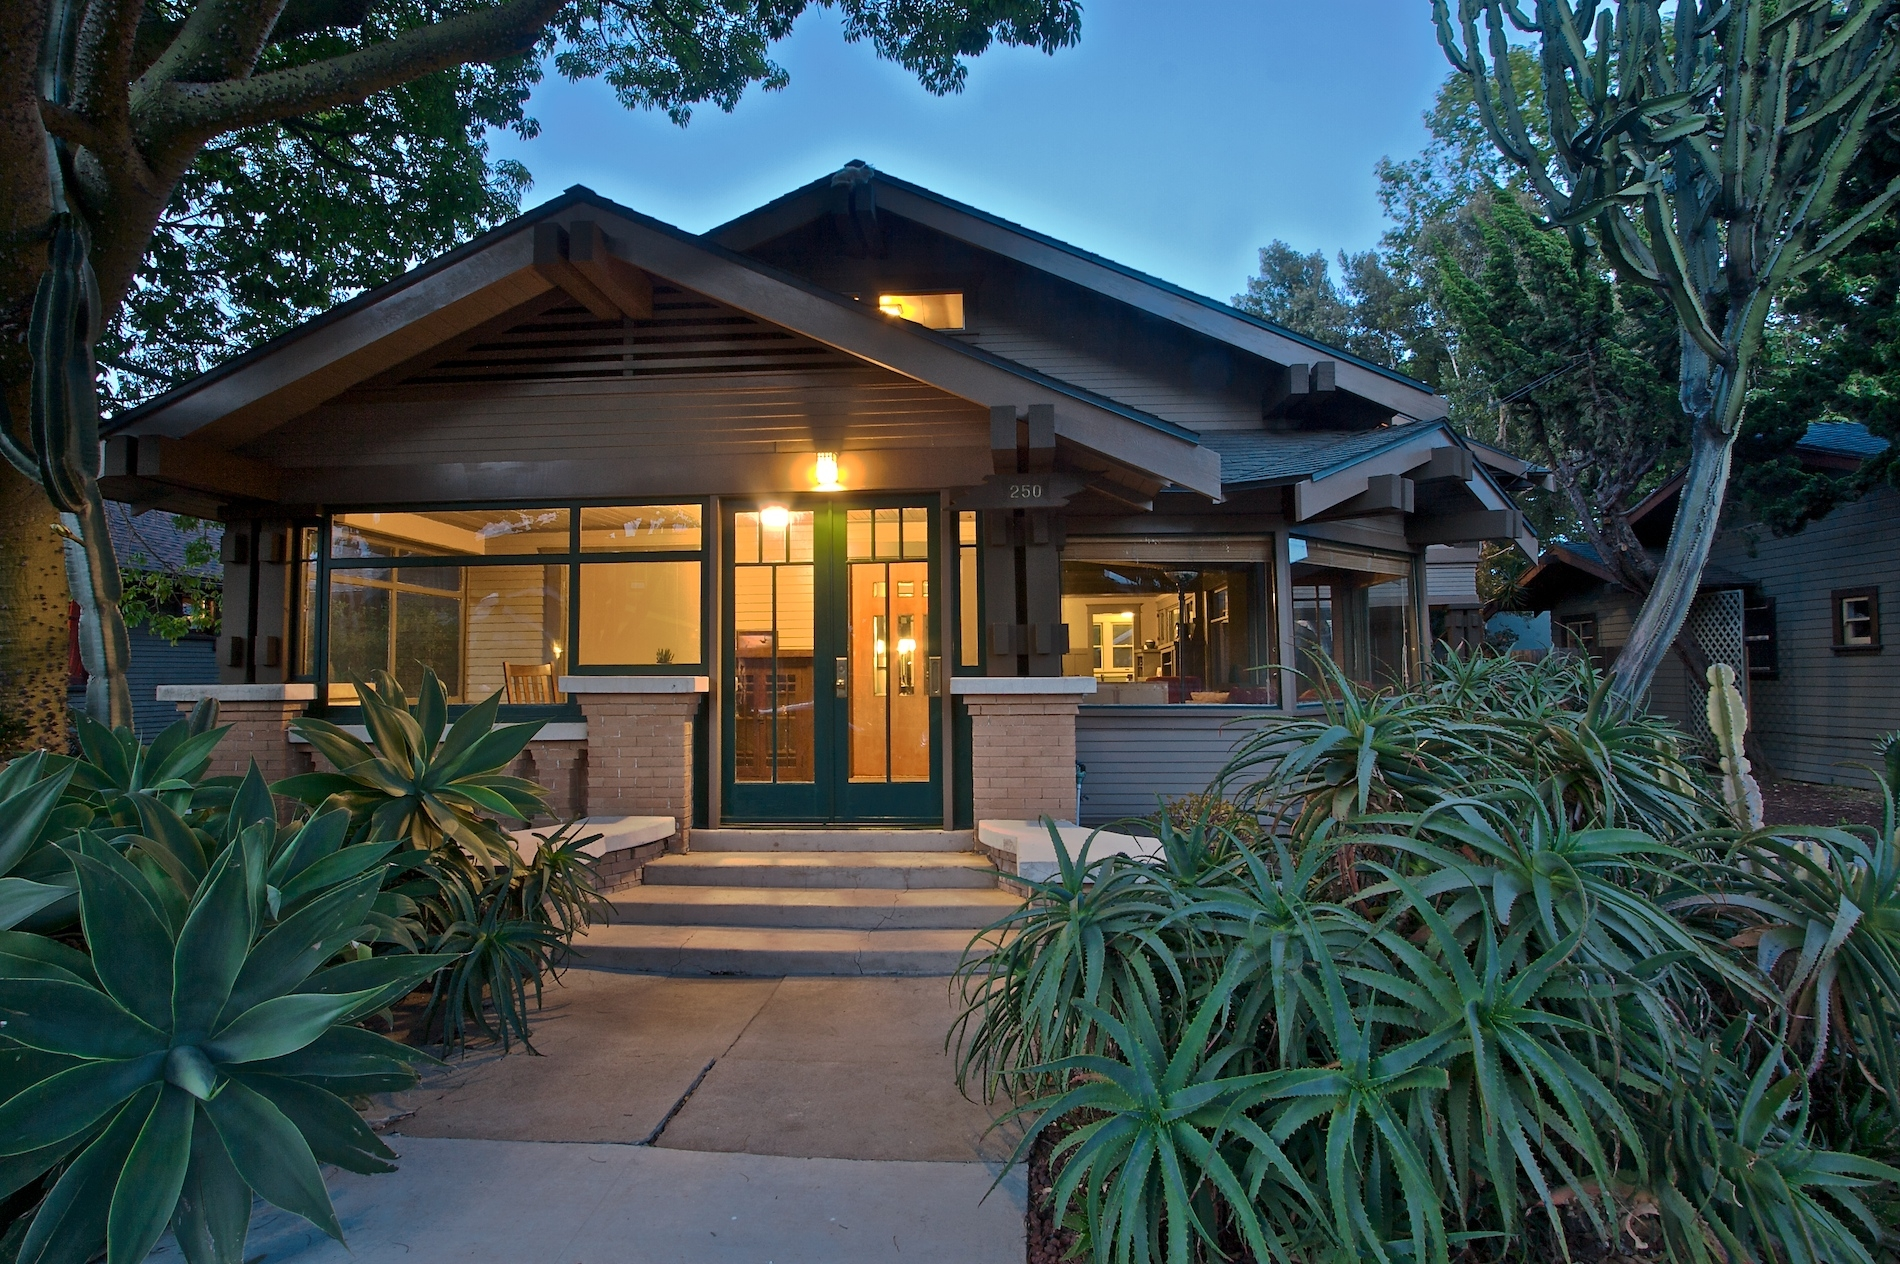 California craftsman bungalow style homes craftsman for Californian bungalow bathroom ideas